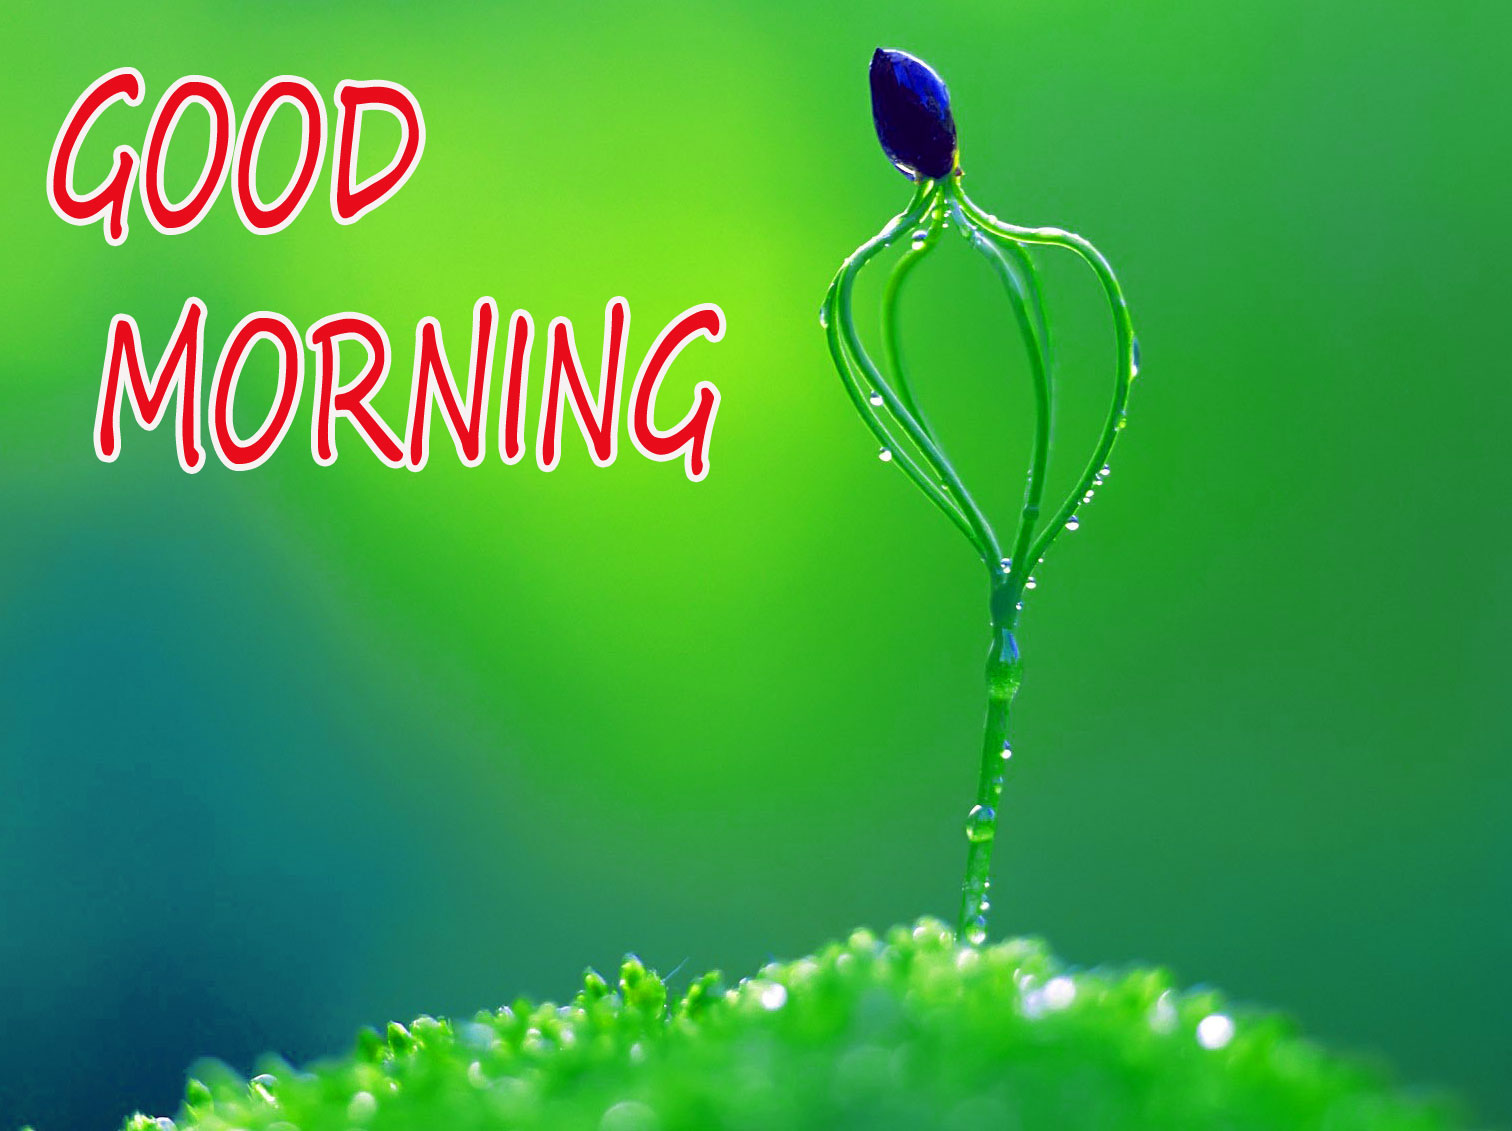 GOOD MORNING IMAGE WITH BEAUTIFUL FLOWERS NATURE WALLPAPER FOR FACEBOOK